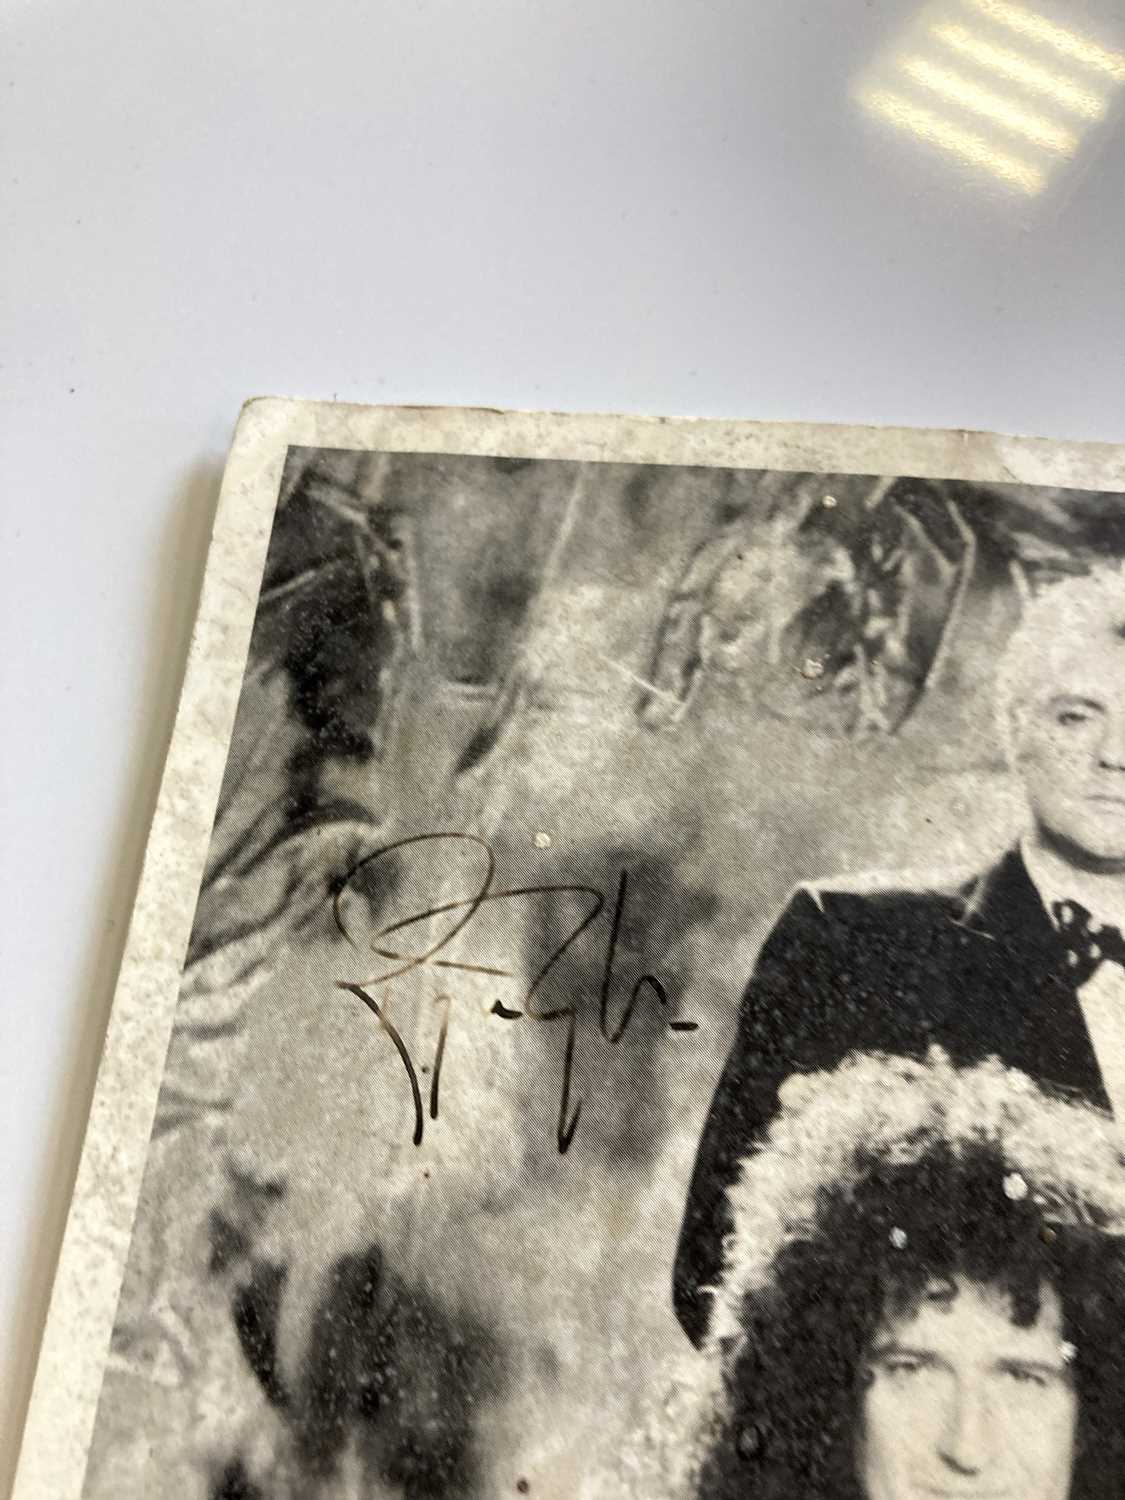 QUEEN SIGNED ITEMS. - Image 6 of 7